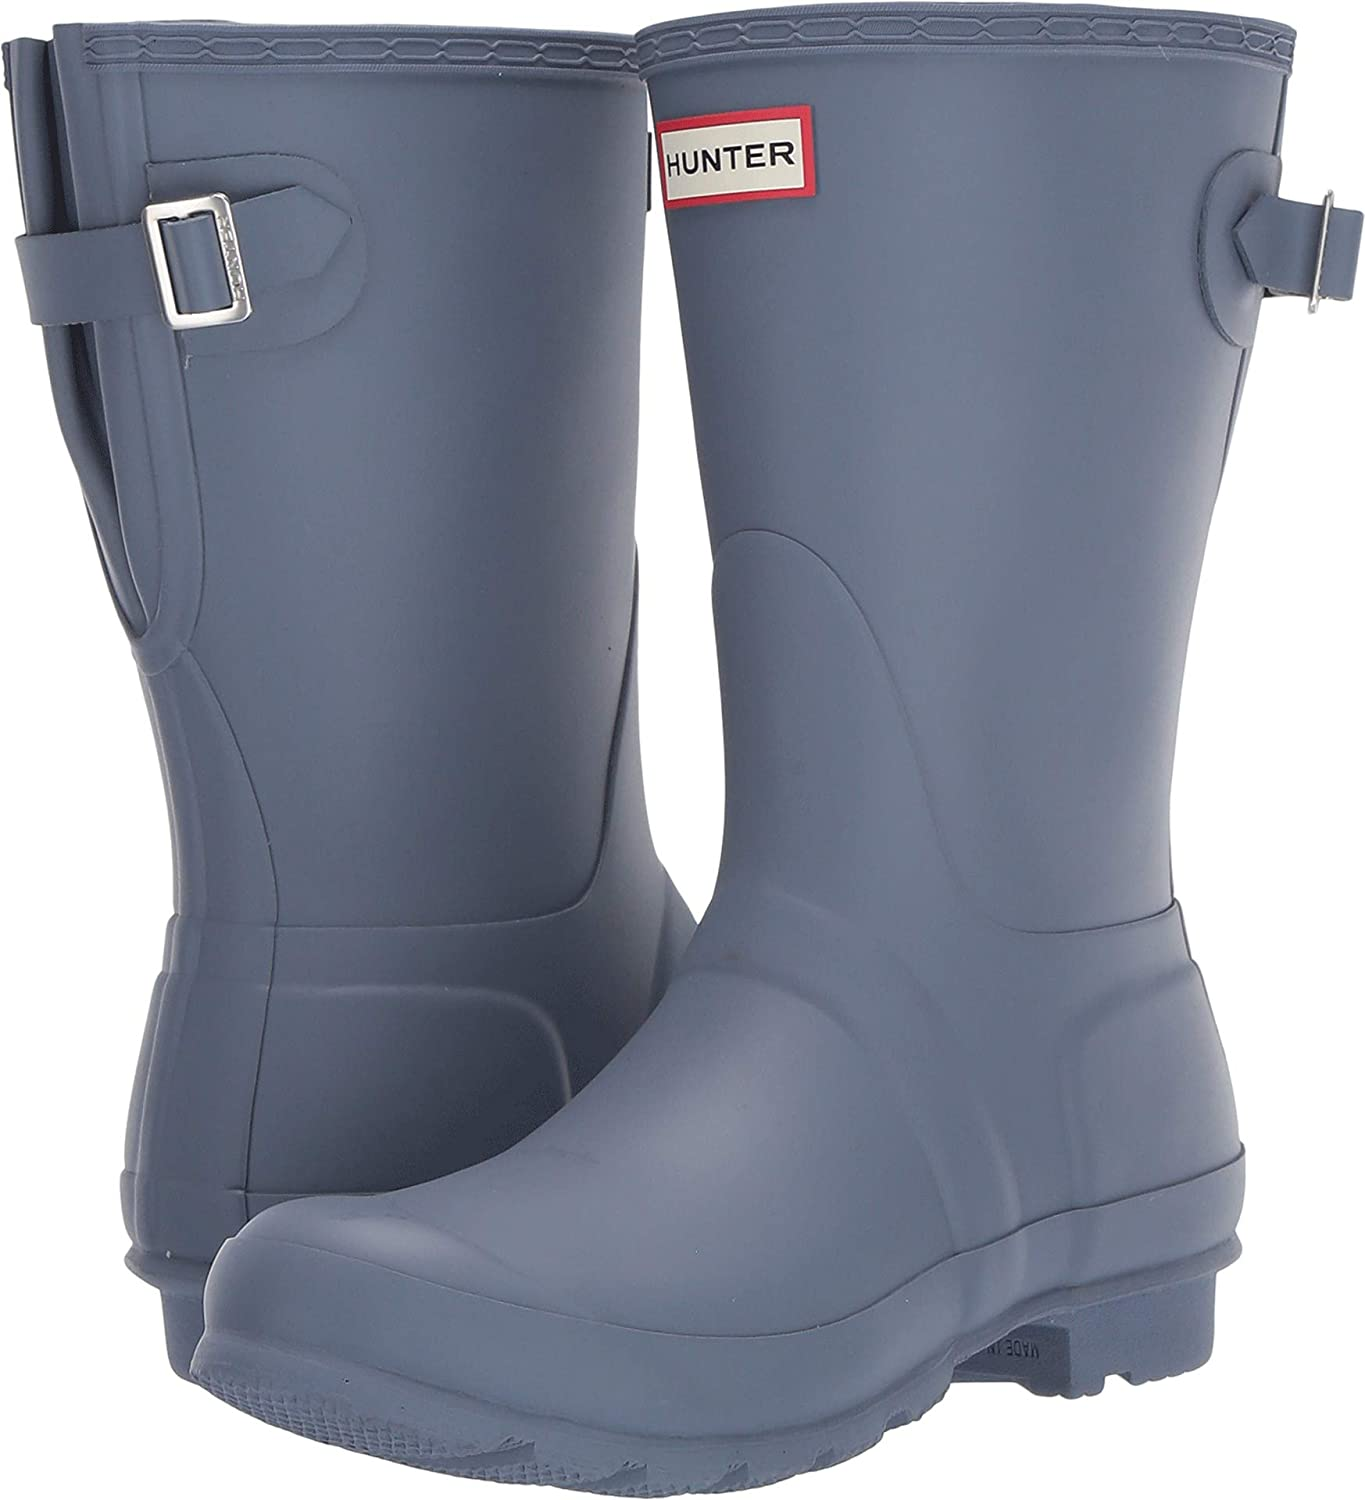 Gull Grey Hunter Boots Women's Original Back Adjustable Short Rain Boot